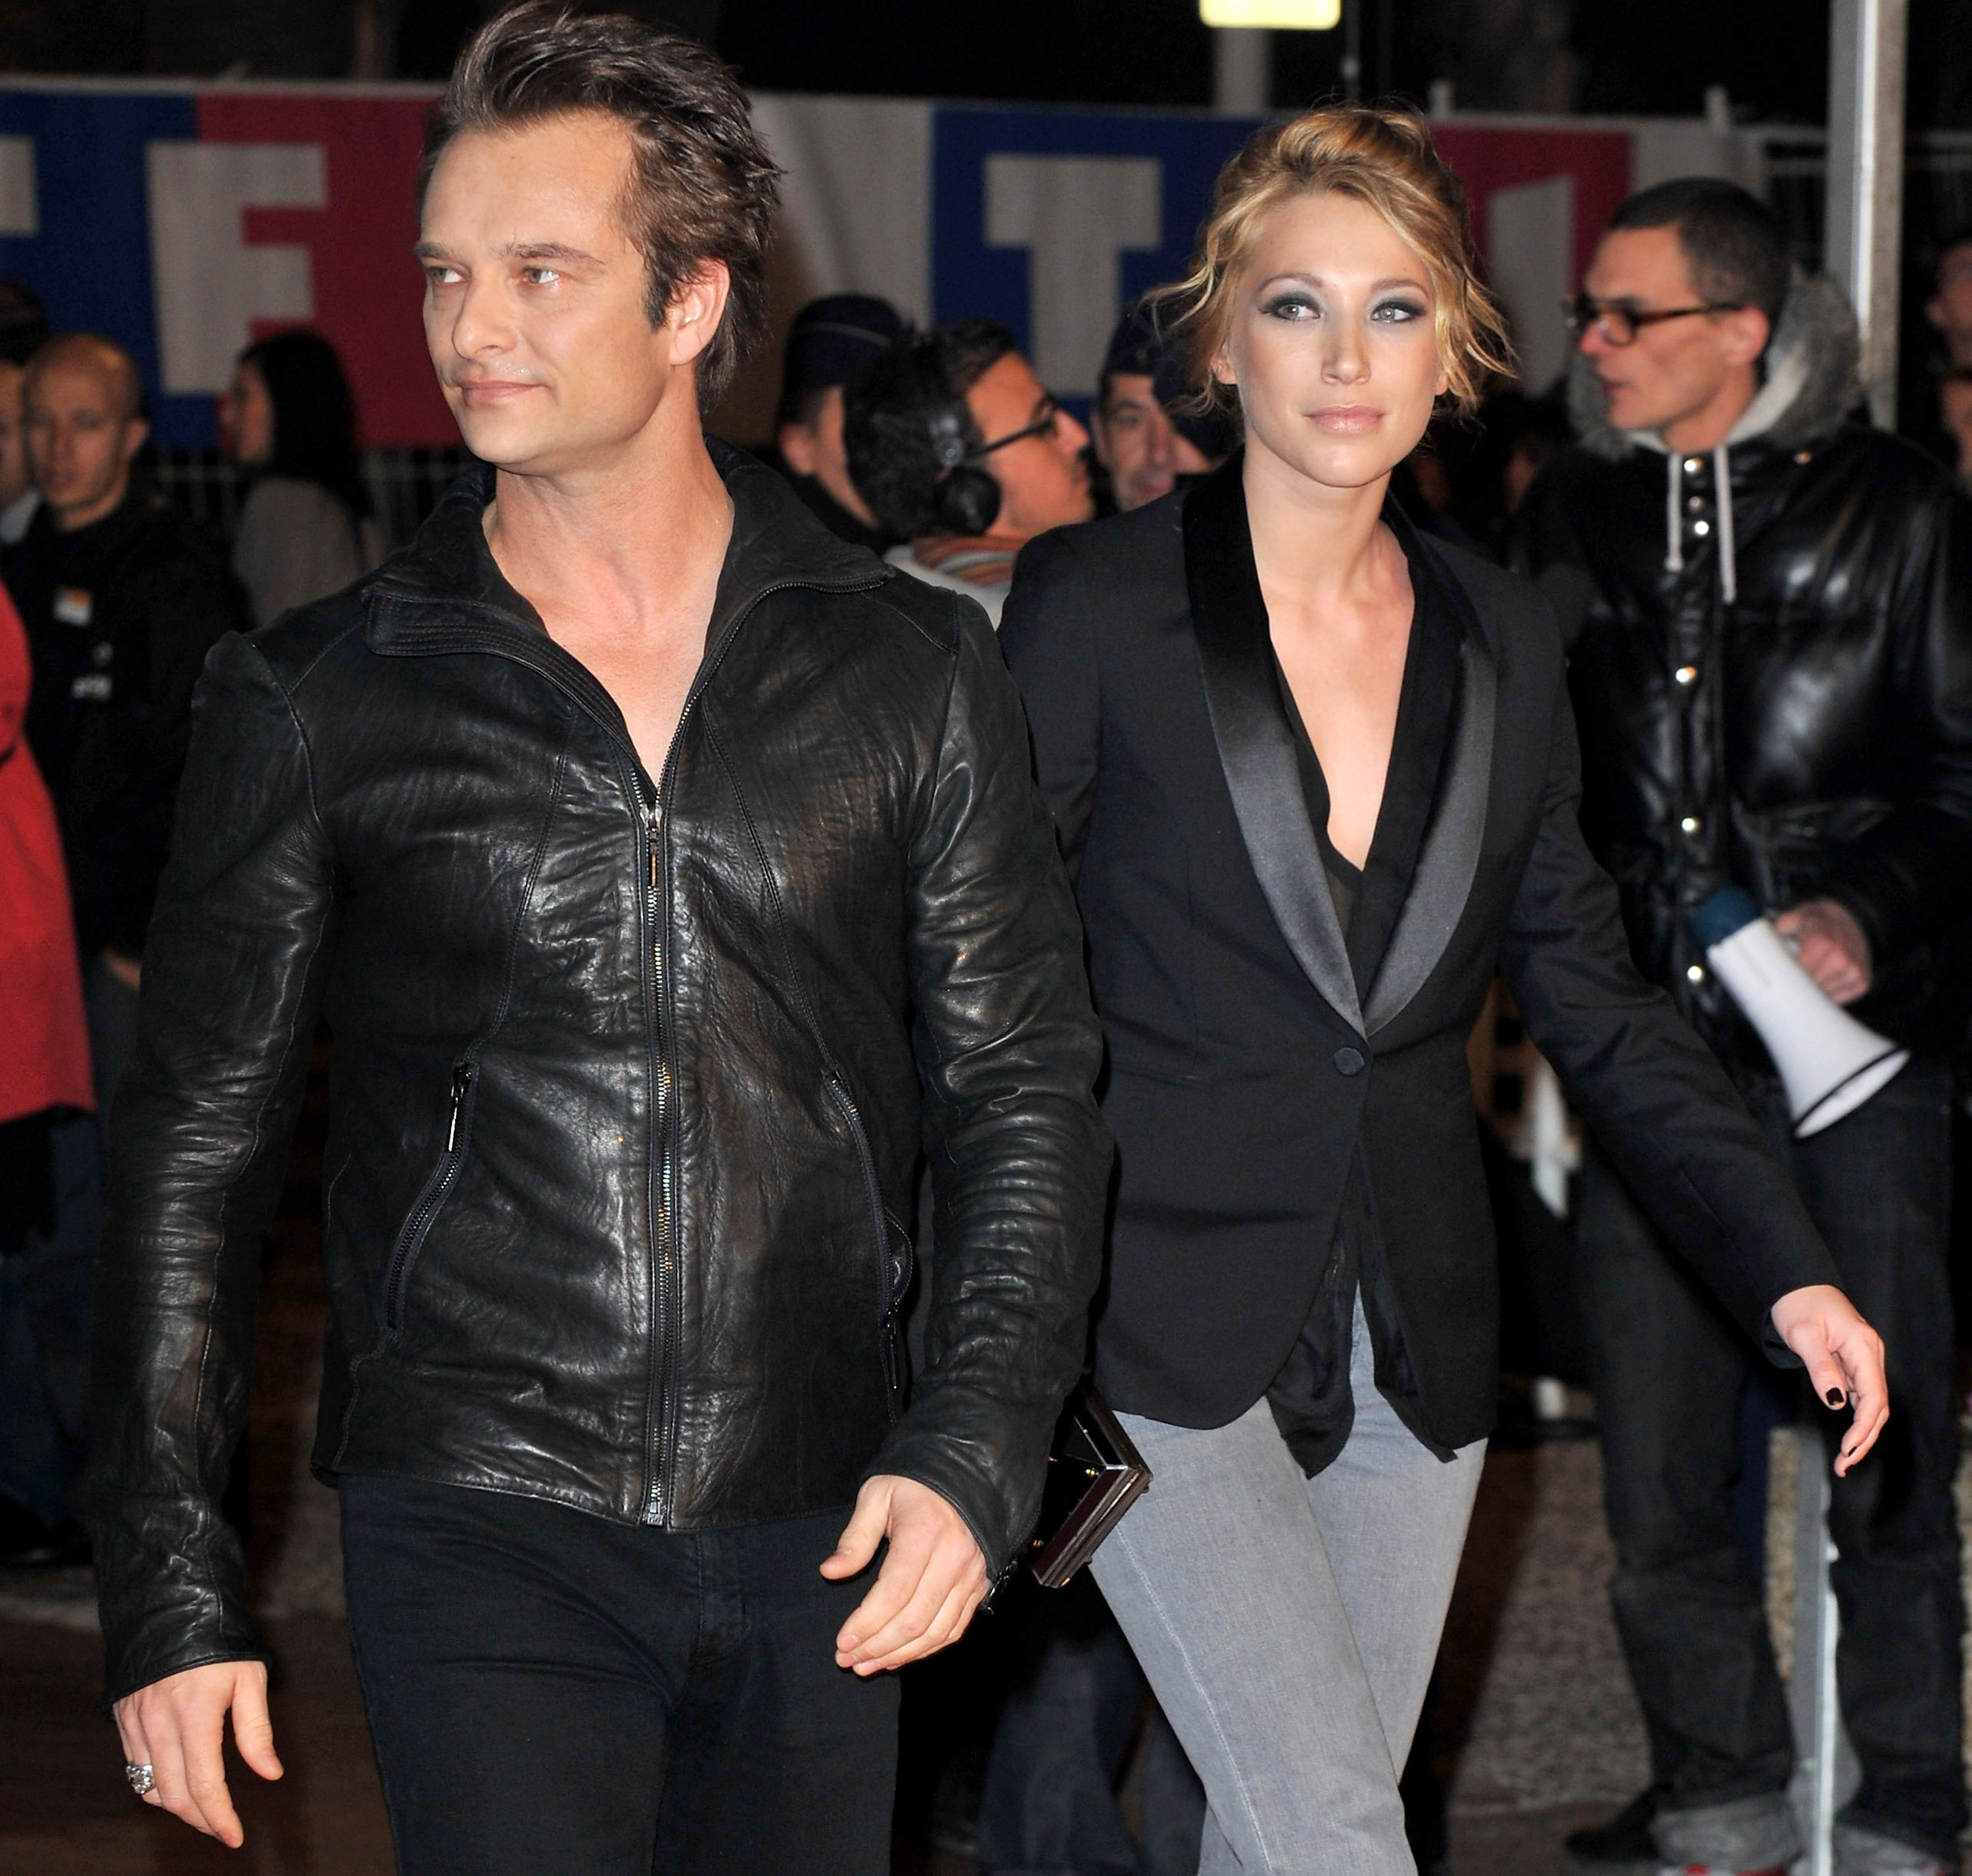 David Hallyday et Laura Smet arrivent au Palais des Festivals pour assister aux NRJ Music Awards le 23 janvier 2010 à Cannes. | Photo : Getty Images